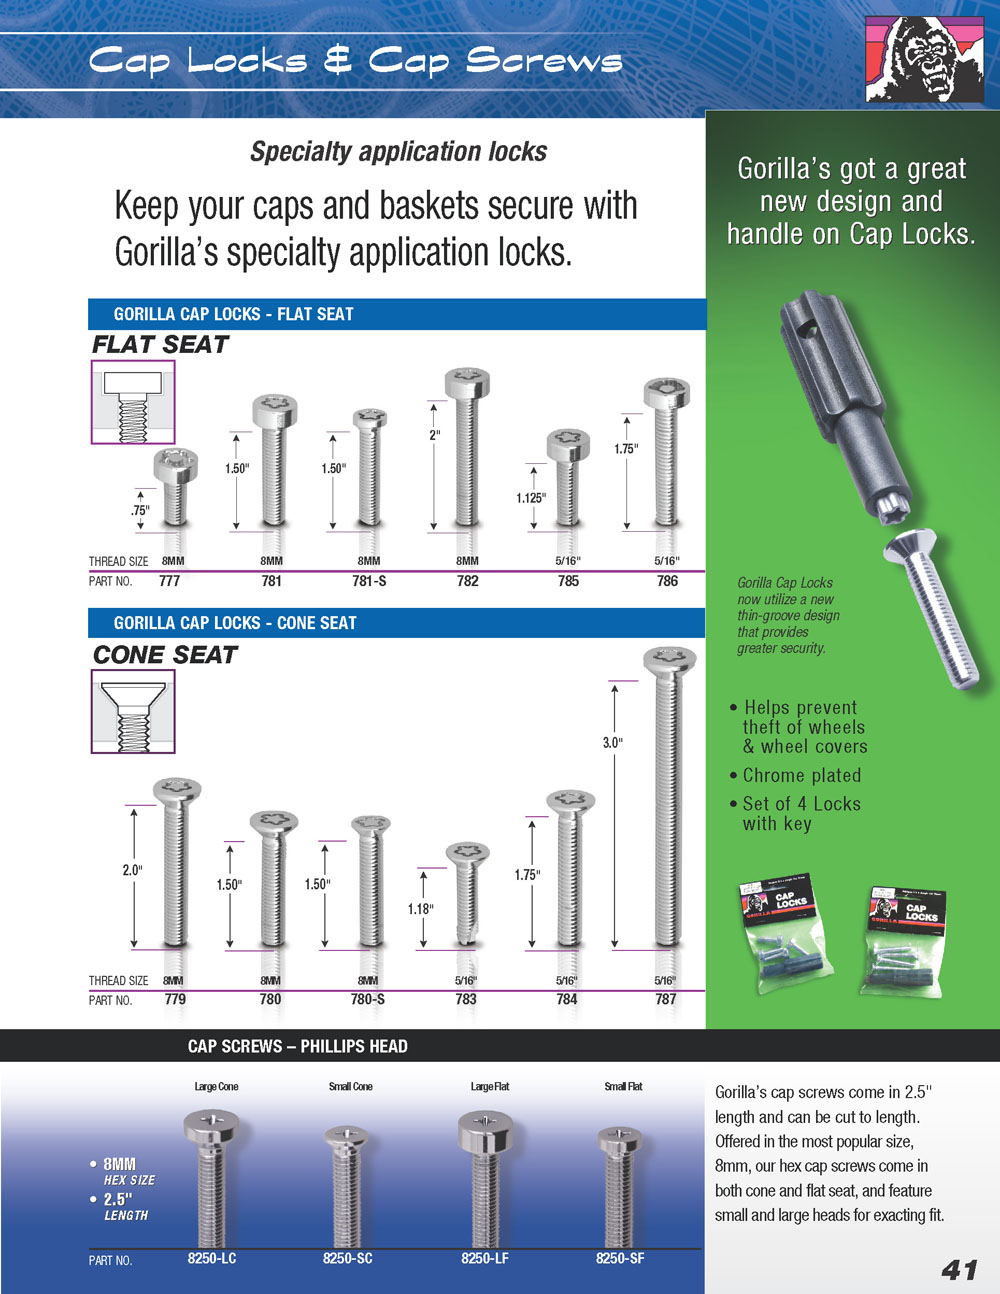 gorilla auto cap locks and cap screws